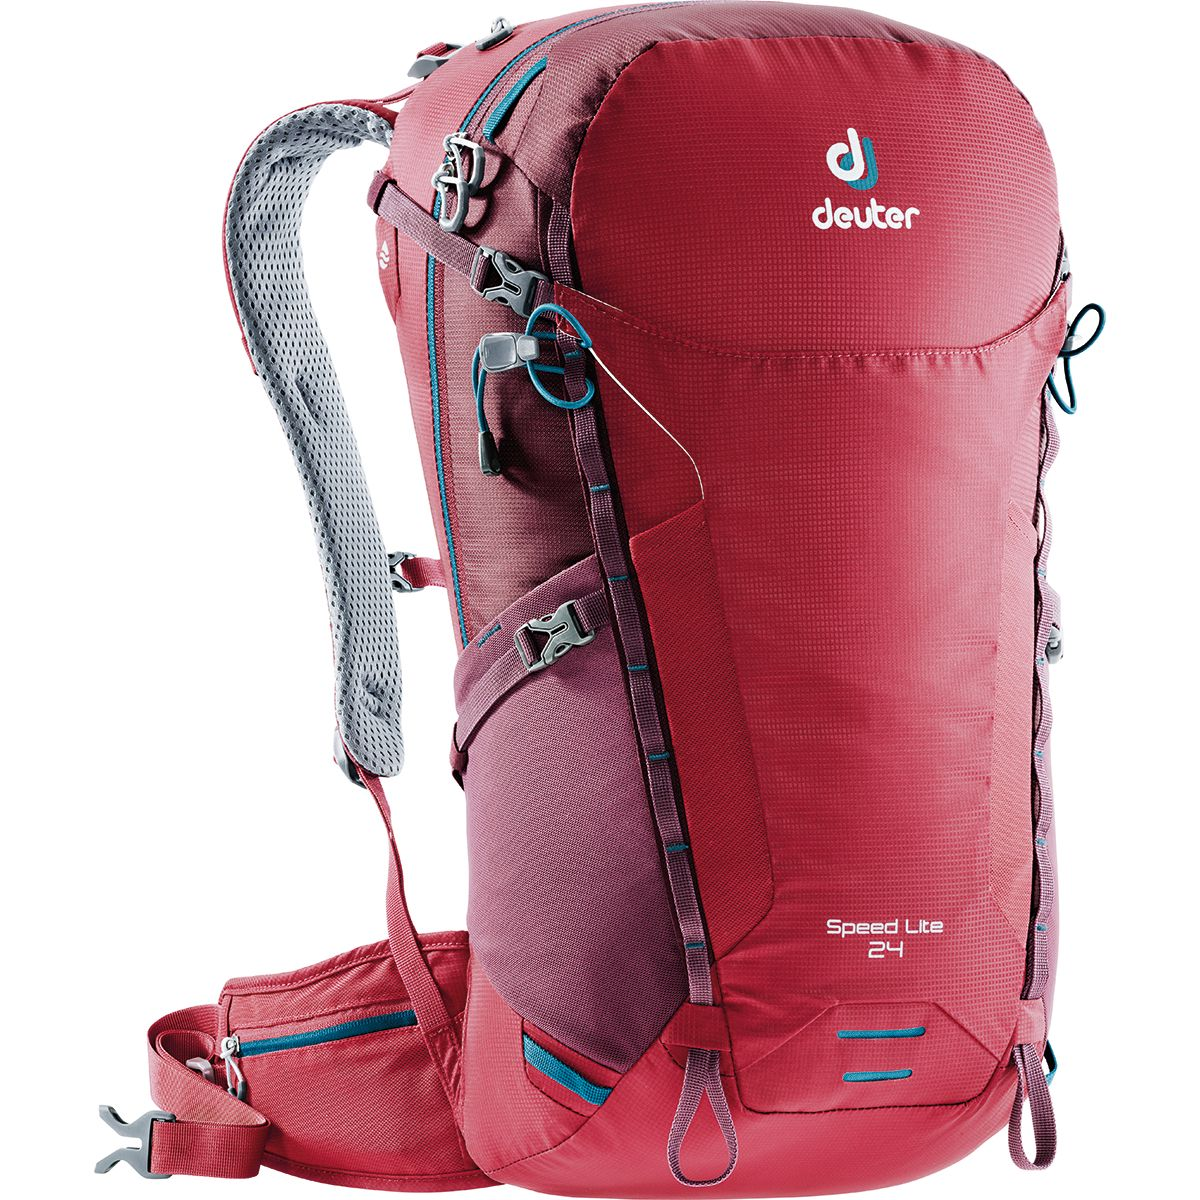 Image of Deuter Speed Lite 24 Rucksack (Rot)